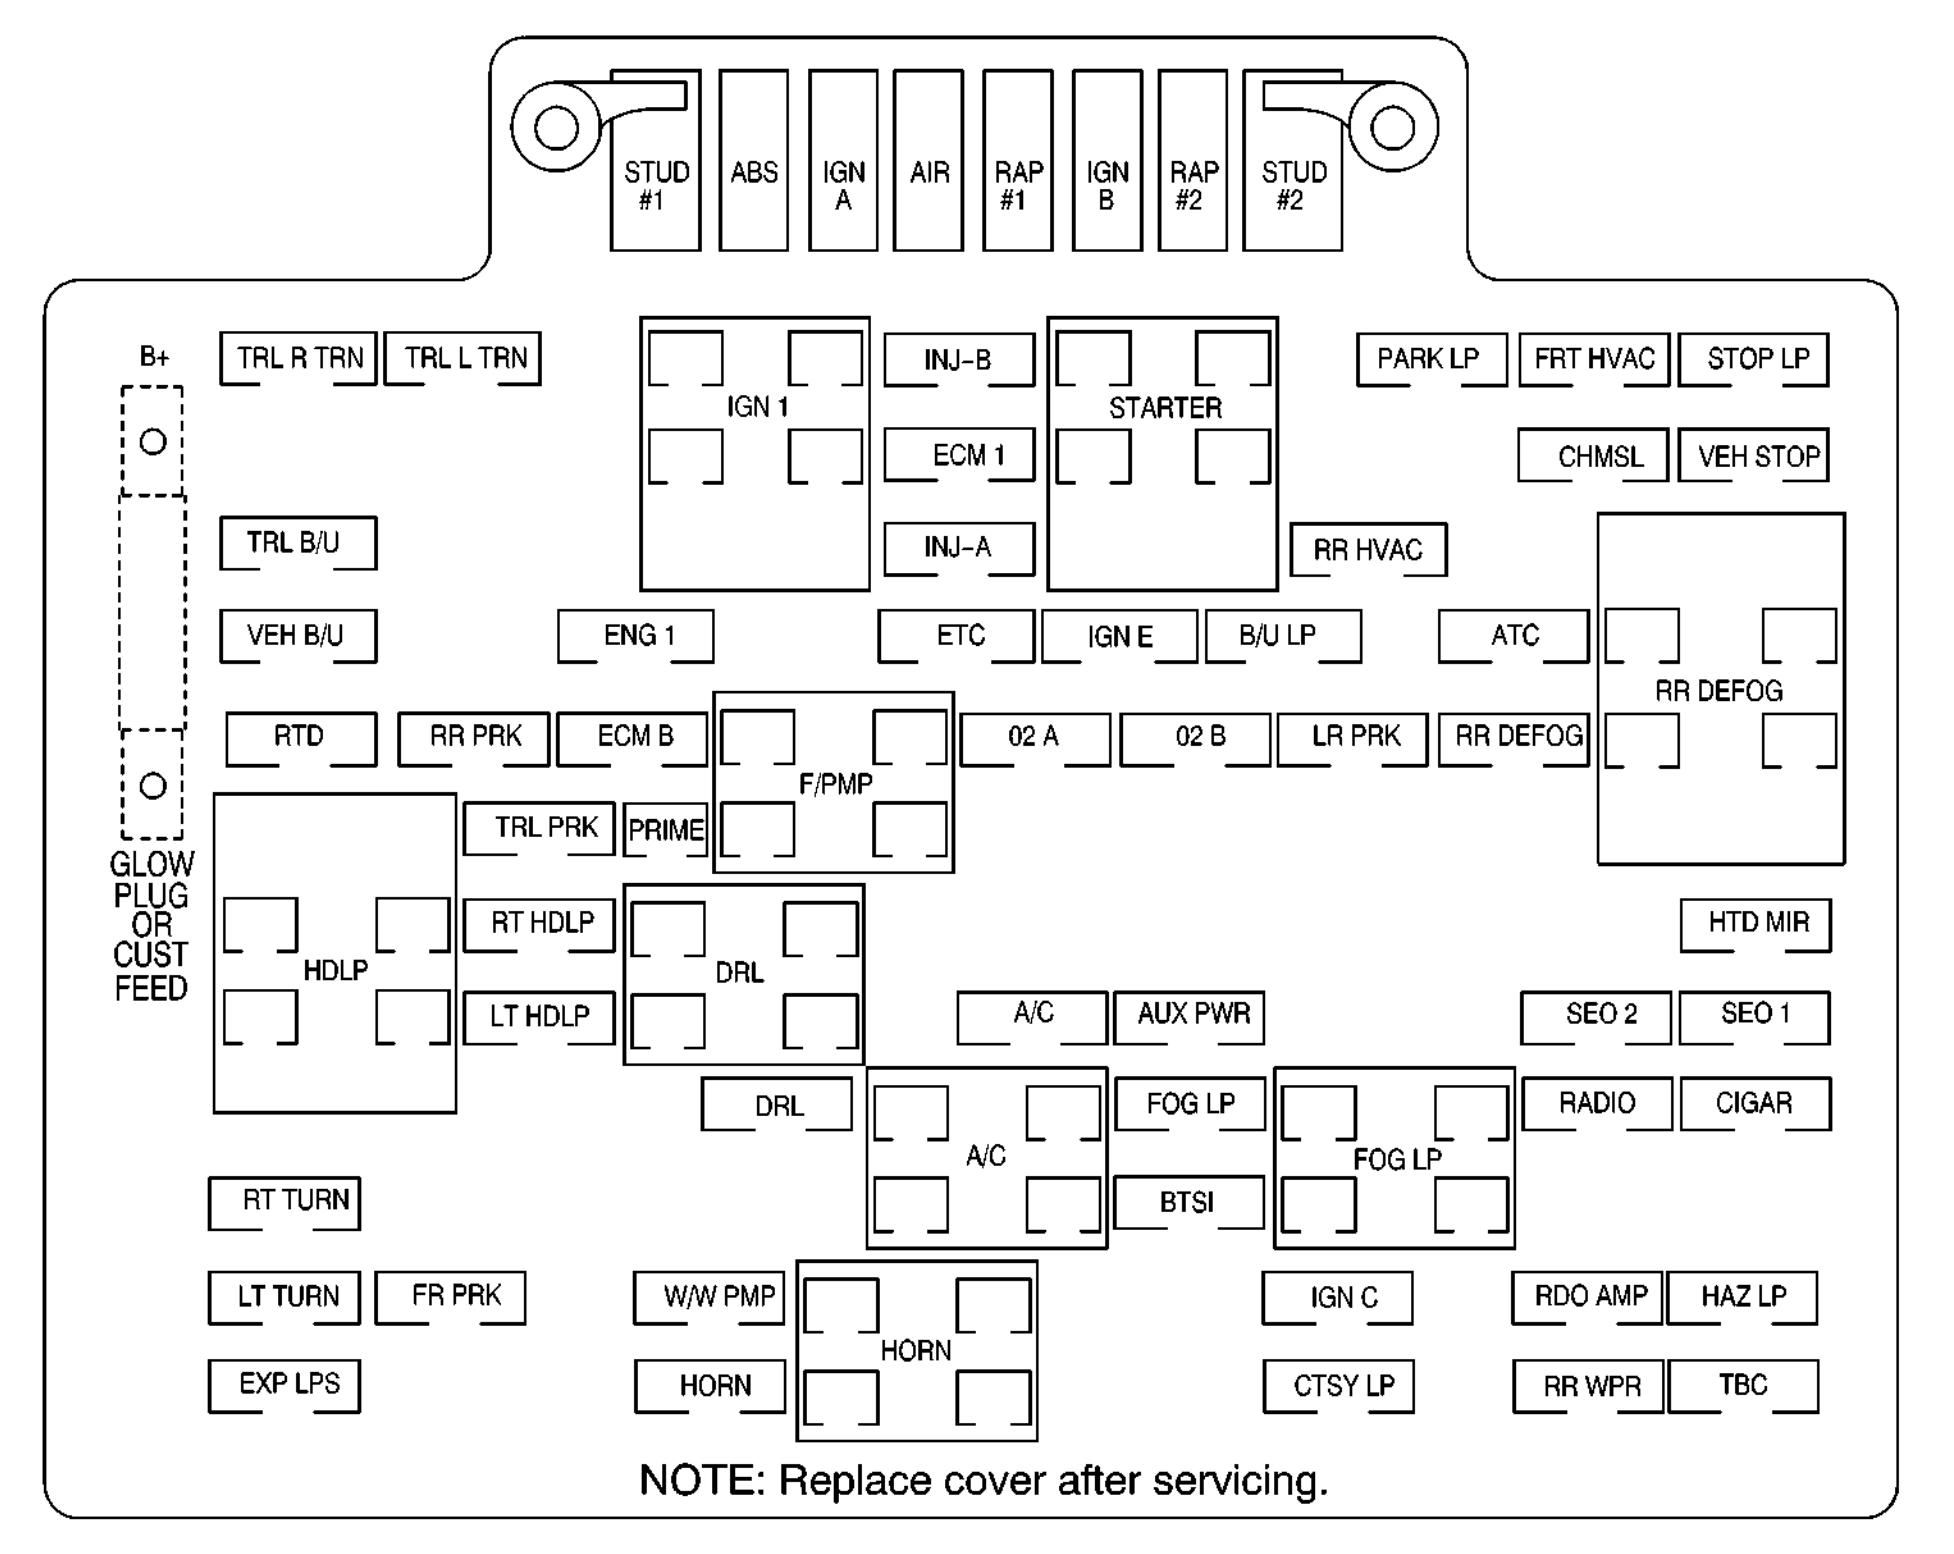 hight resolution of 1999 chevy suburban fuse box diagram wiring diagram origin 2003 chevrolet suburban fuse diagram 02 suburban